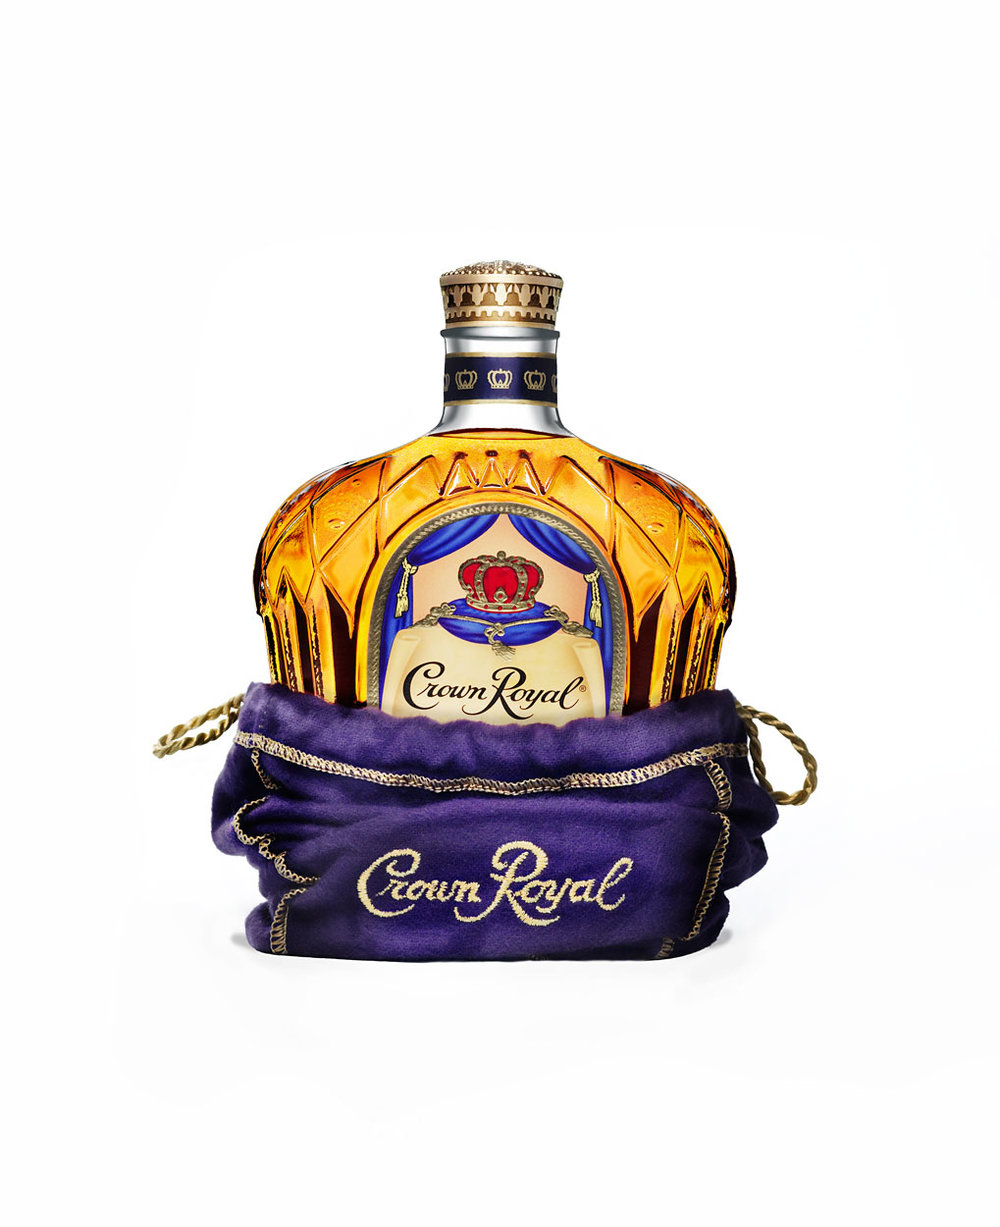 Crown-Royal.jpg